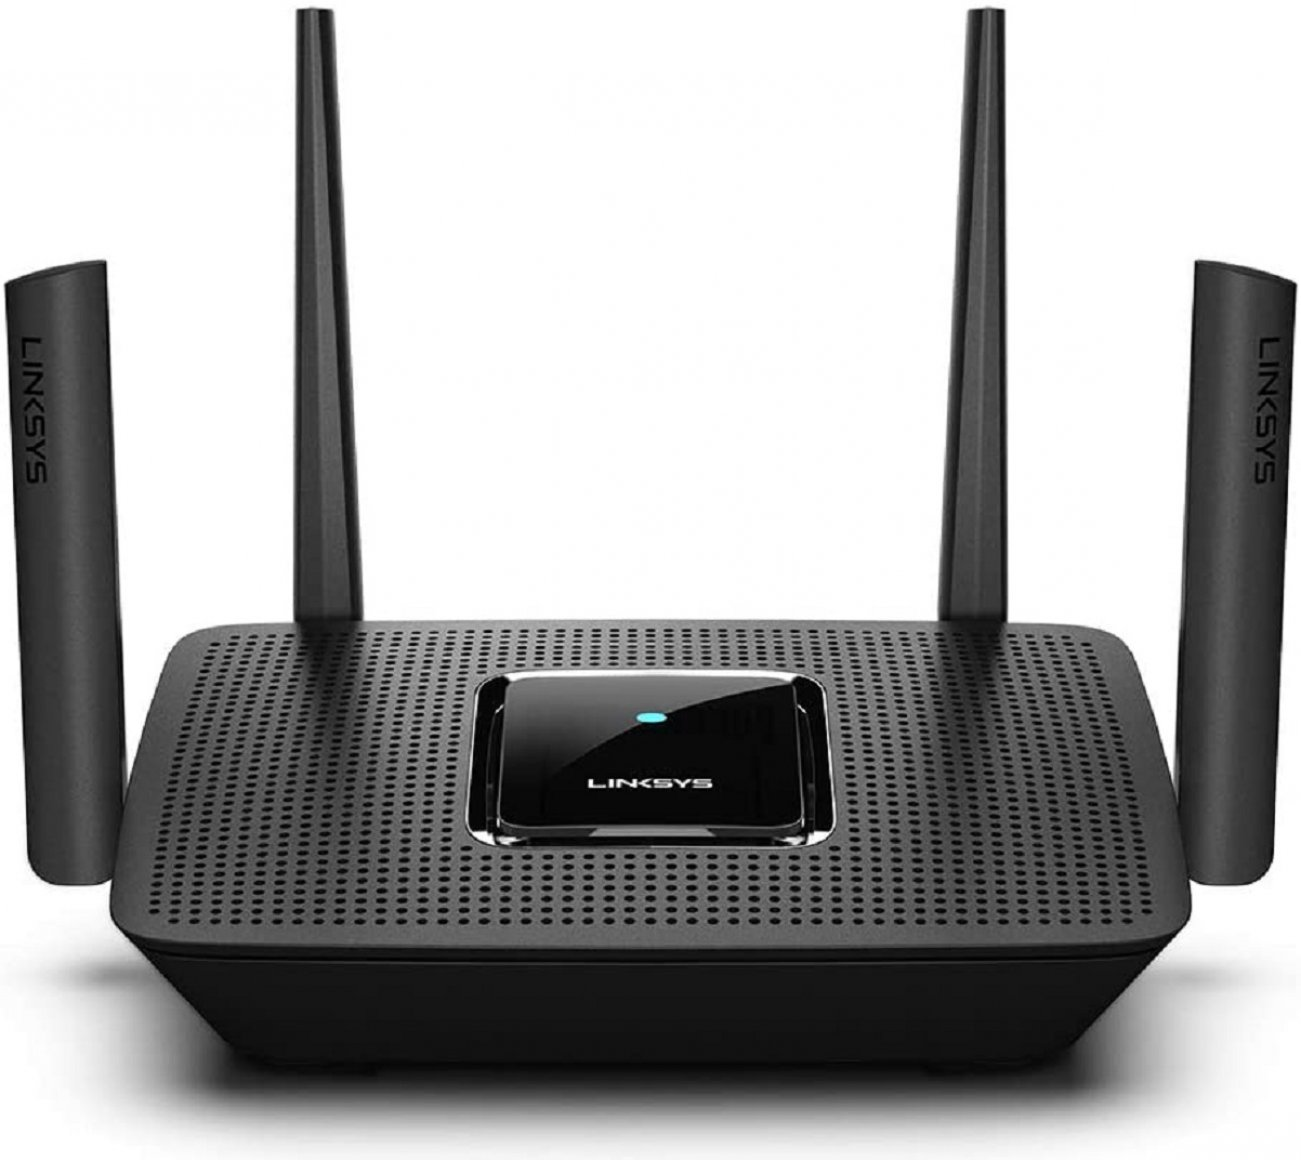 Wi-Fi 6 Might Be a Major Let Down For One Big Reason